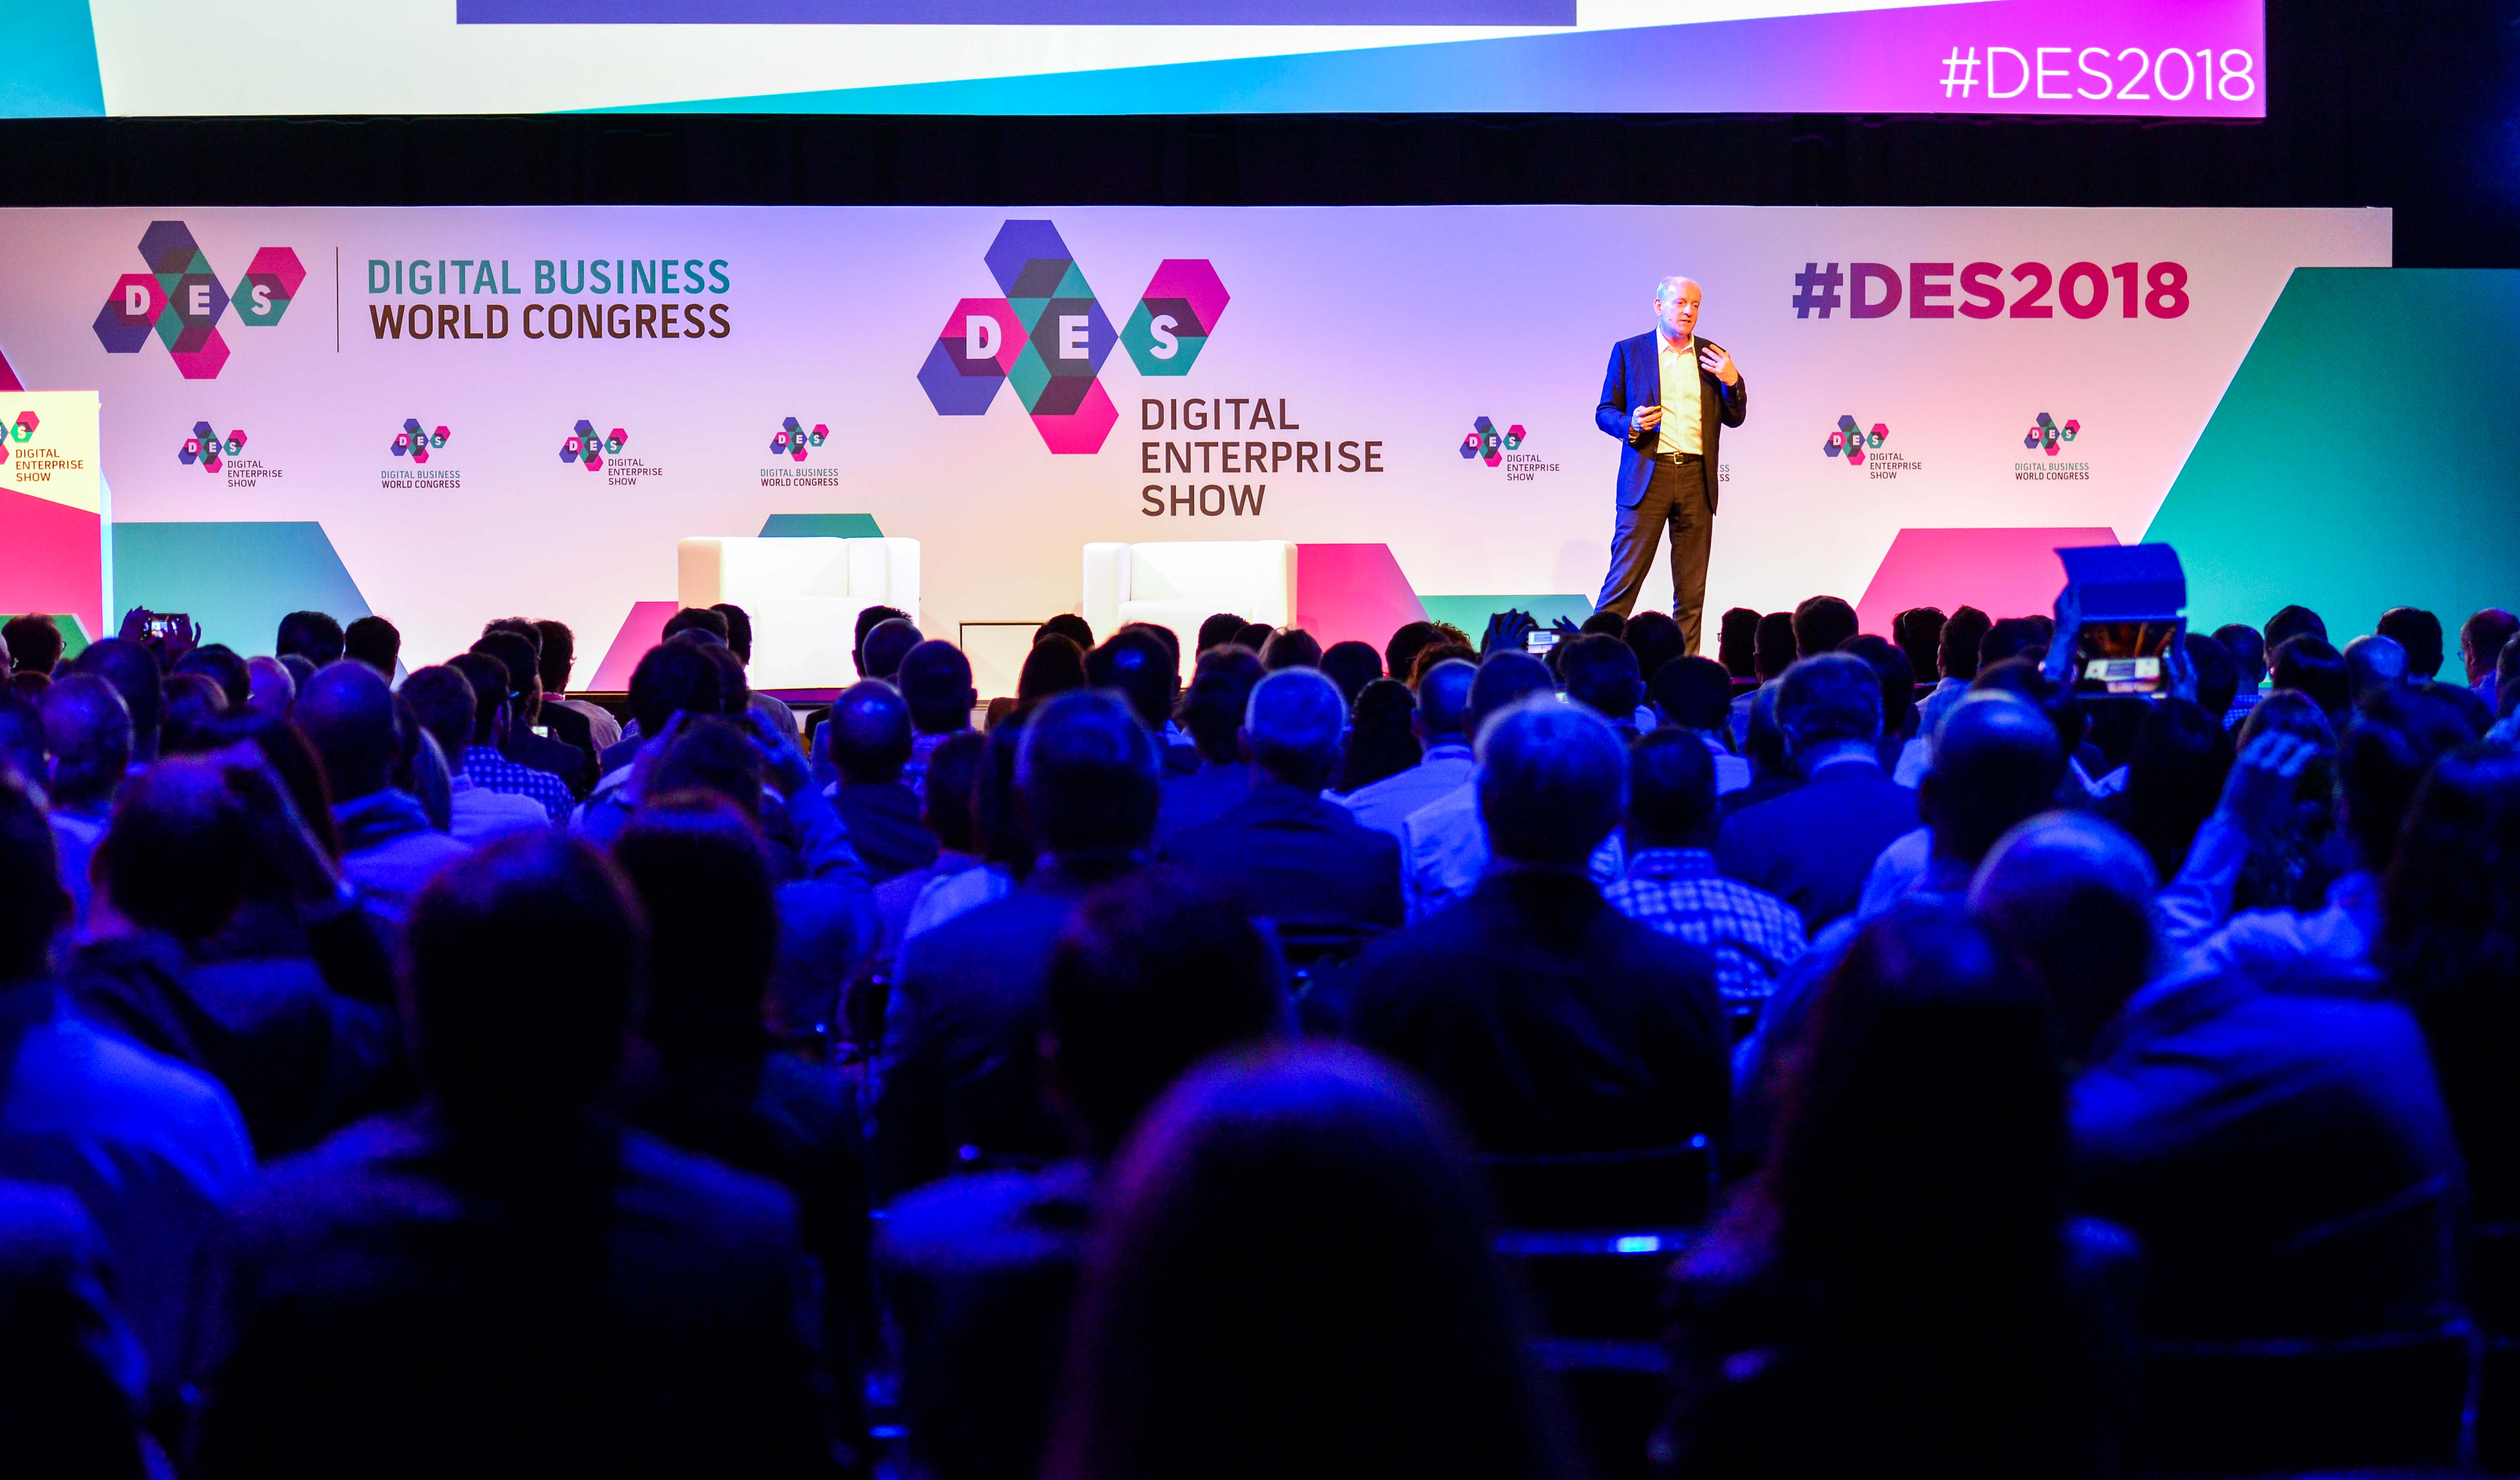 DES2019 gathers administrations and companies in the Cities & Public Sector forum to analyze how the cities of the future will be